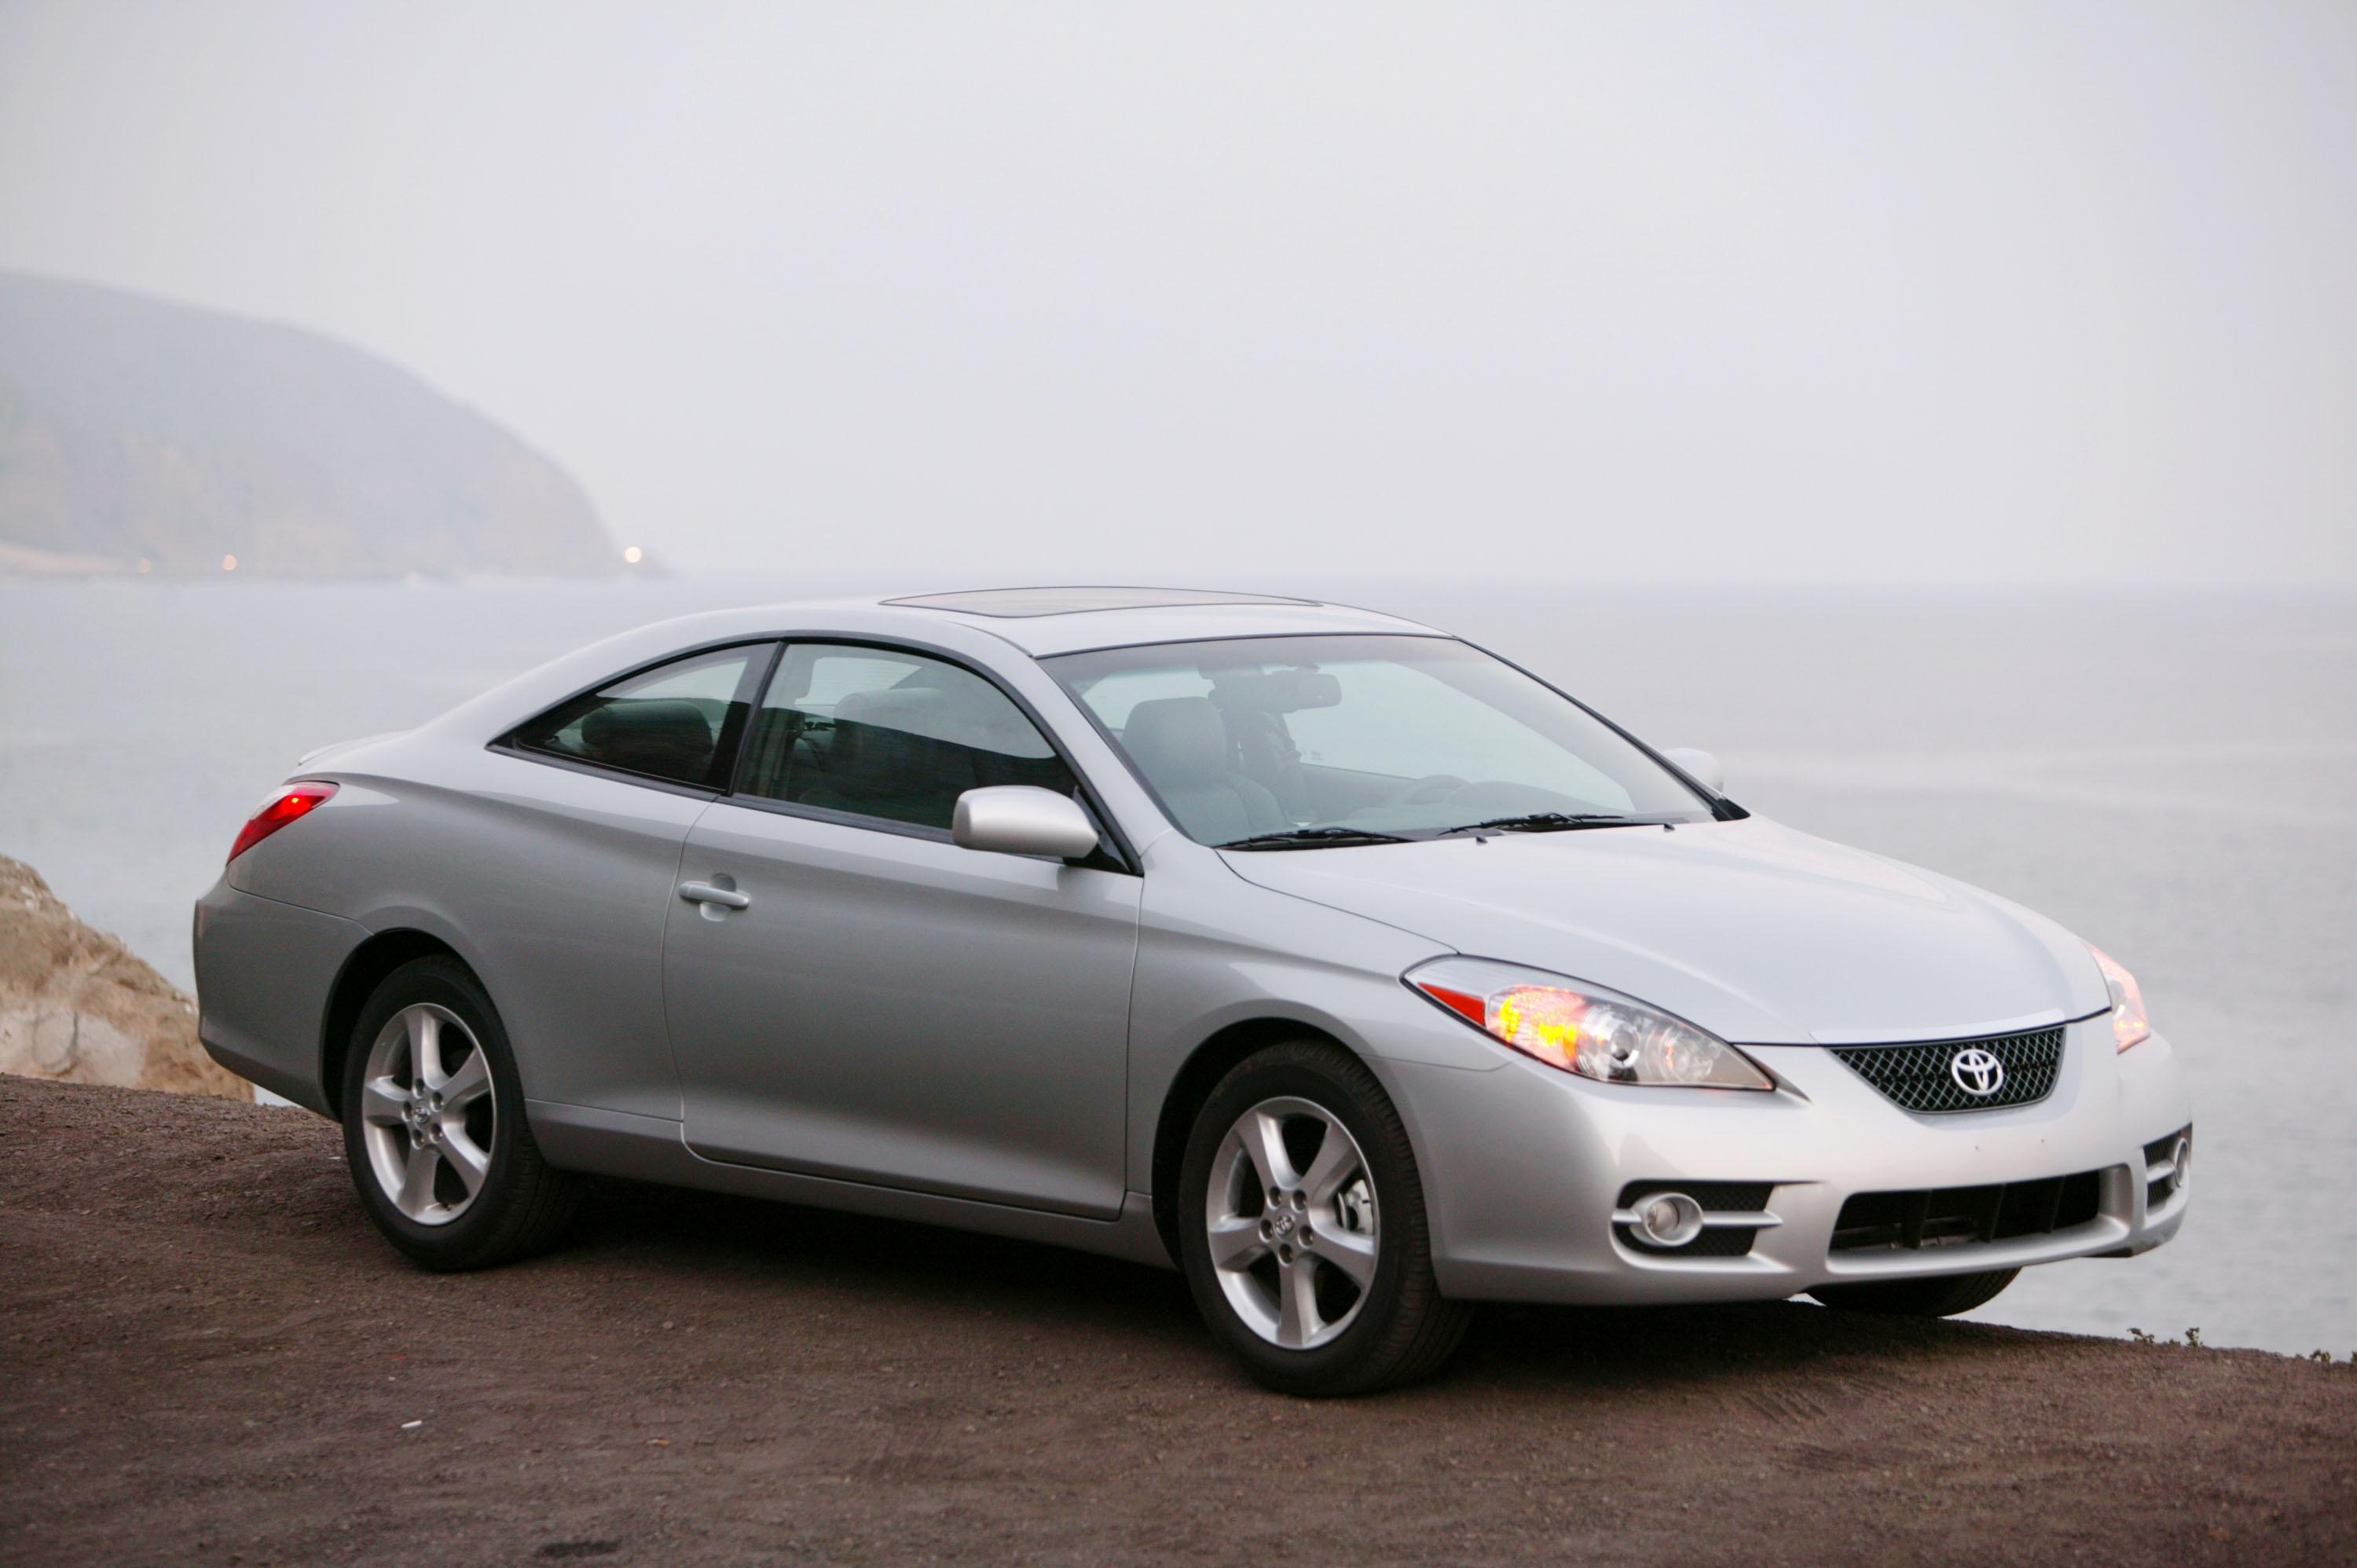 2008 nissan altima coupe review top speed. Black Bedroom Furniture Sets. Home Design Ideas